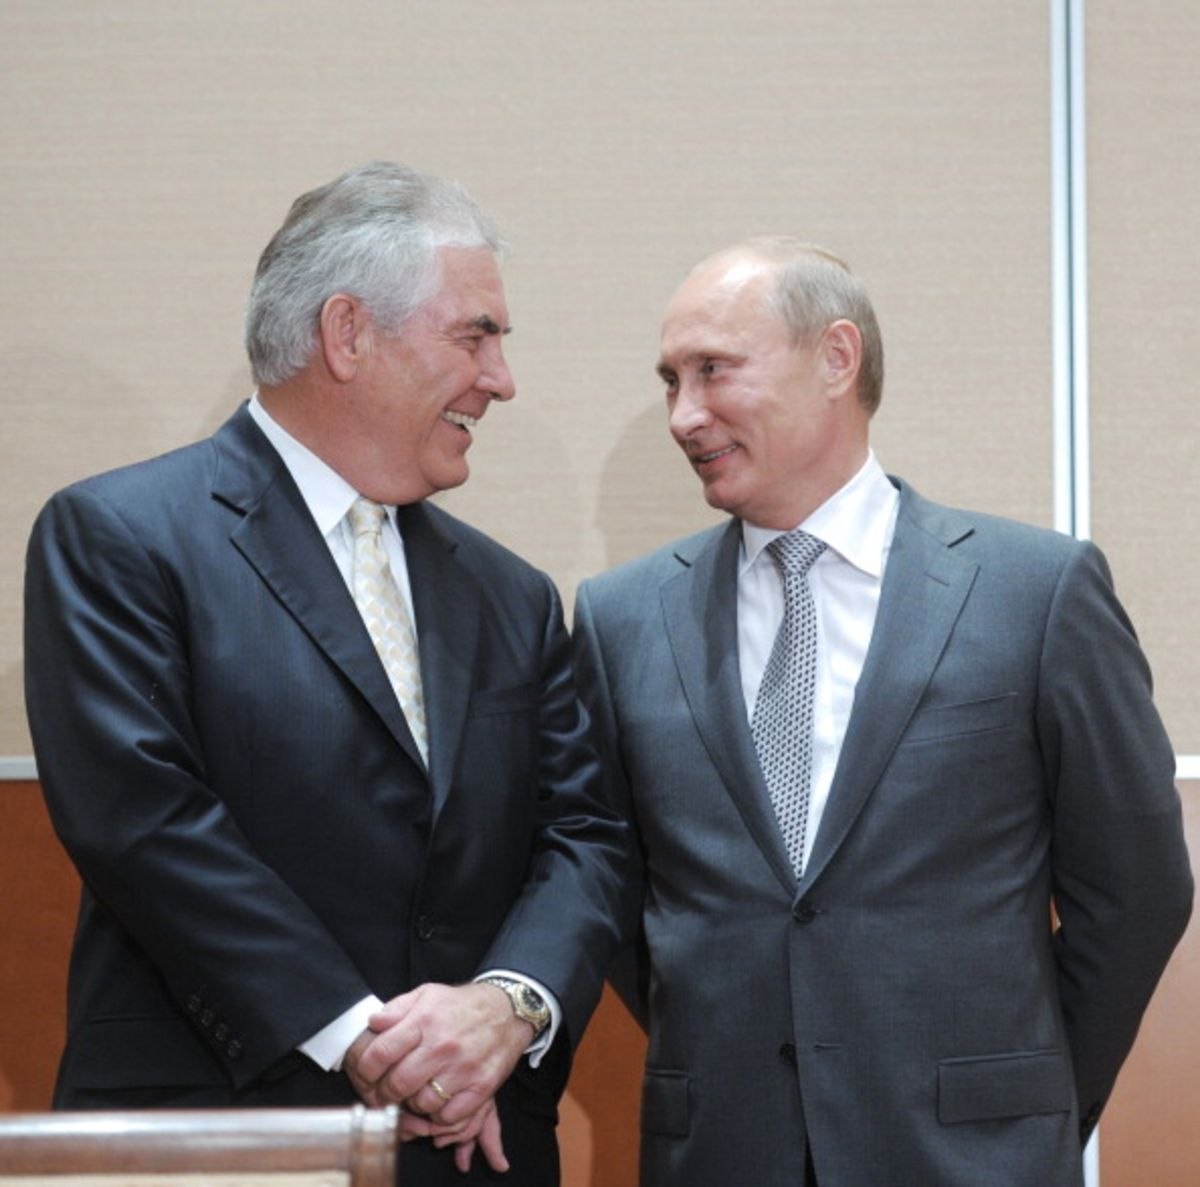 Exxon CEO Has the Skills for a Better Russia Policy - Bloomberg